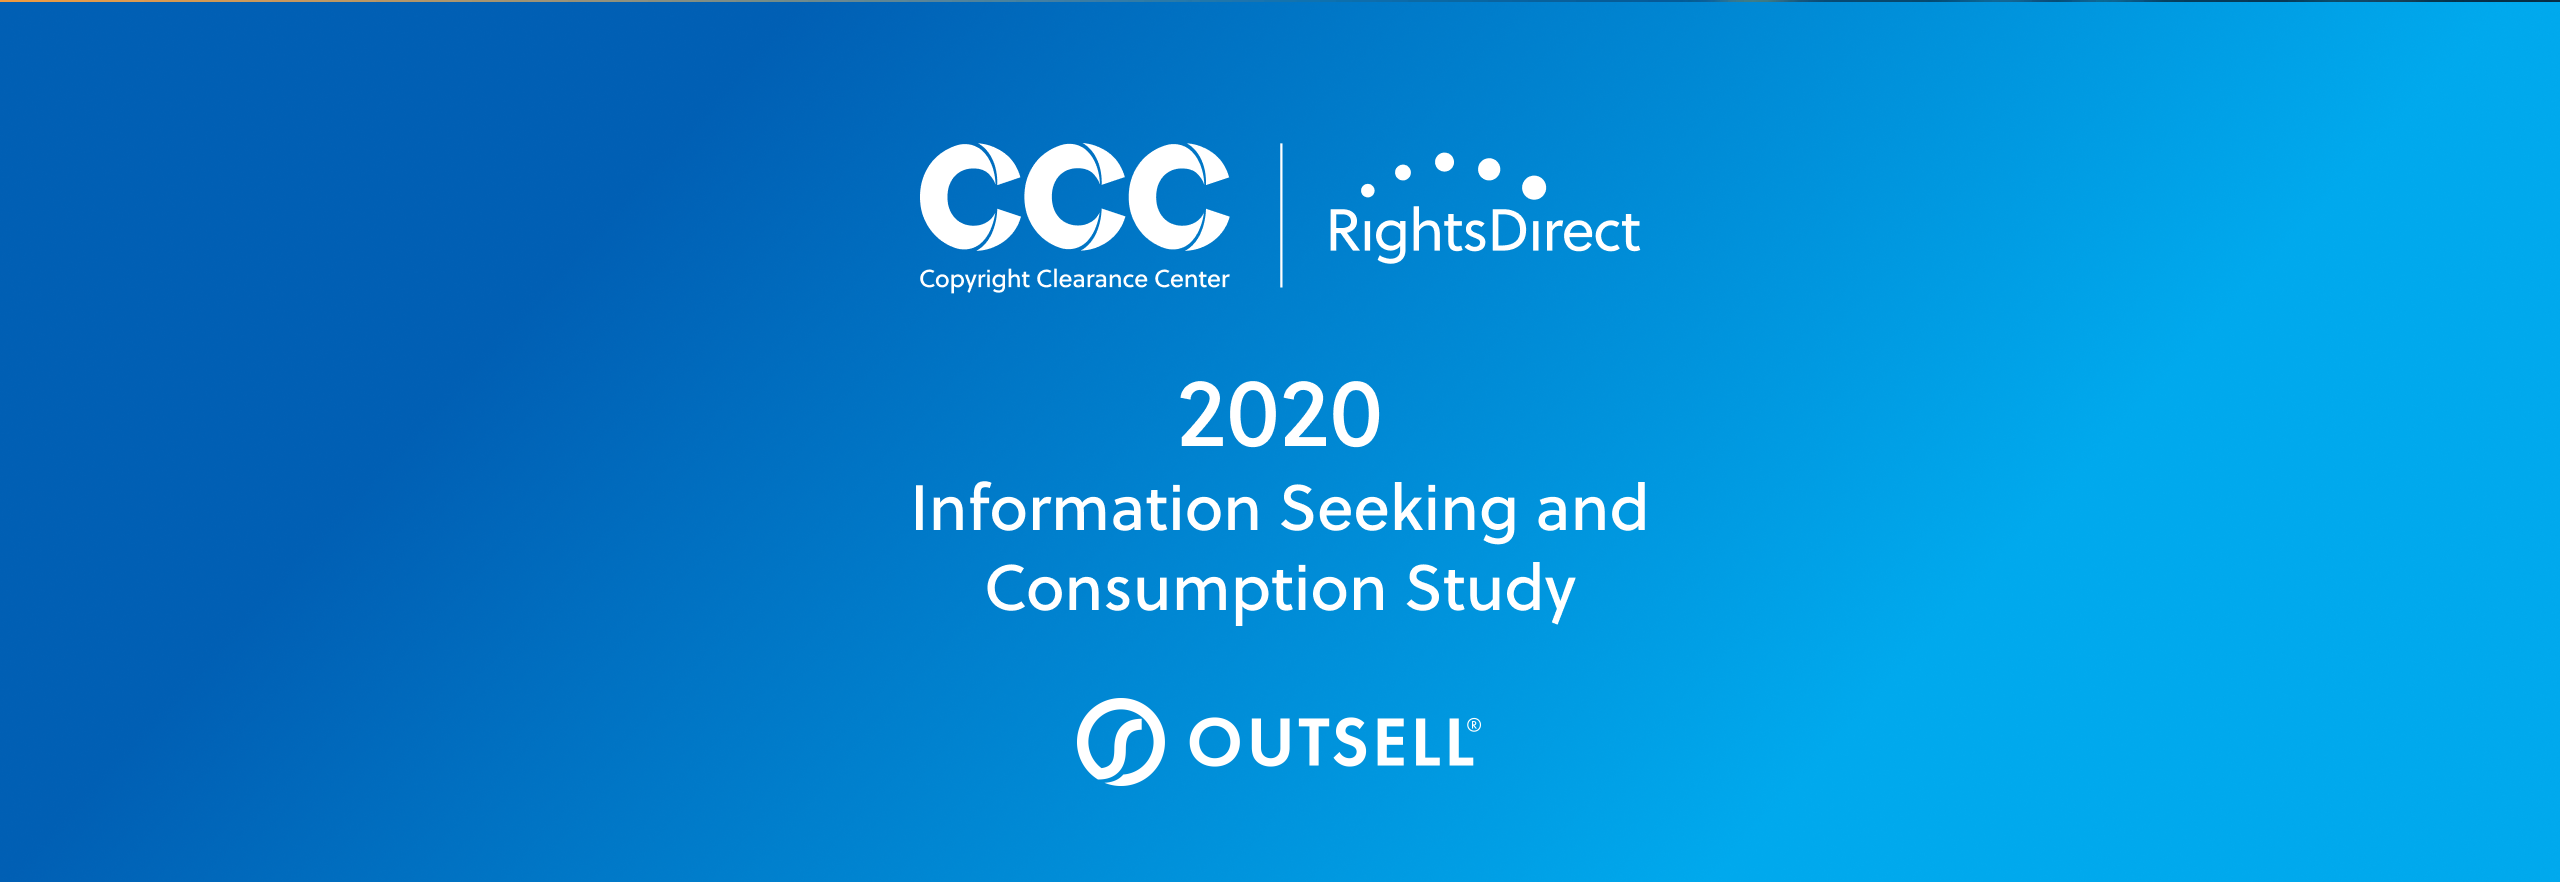 Copyright Clearance Center, RightsDirect, and Outsell: 2020 Information Seeking and Consumption Study